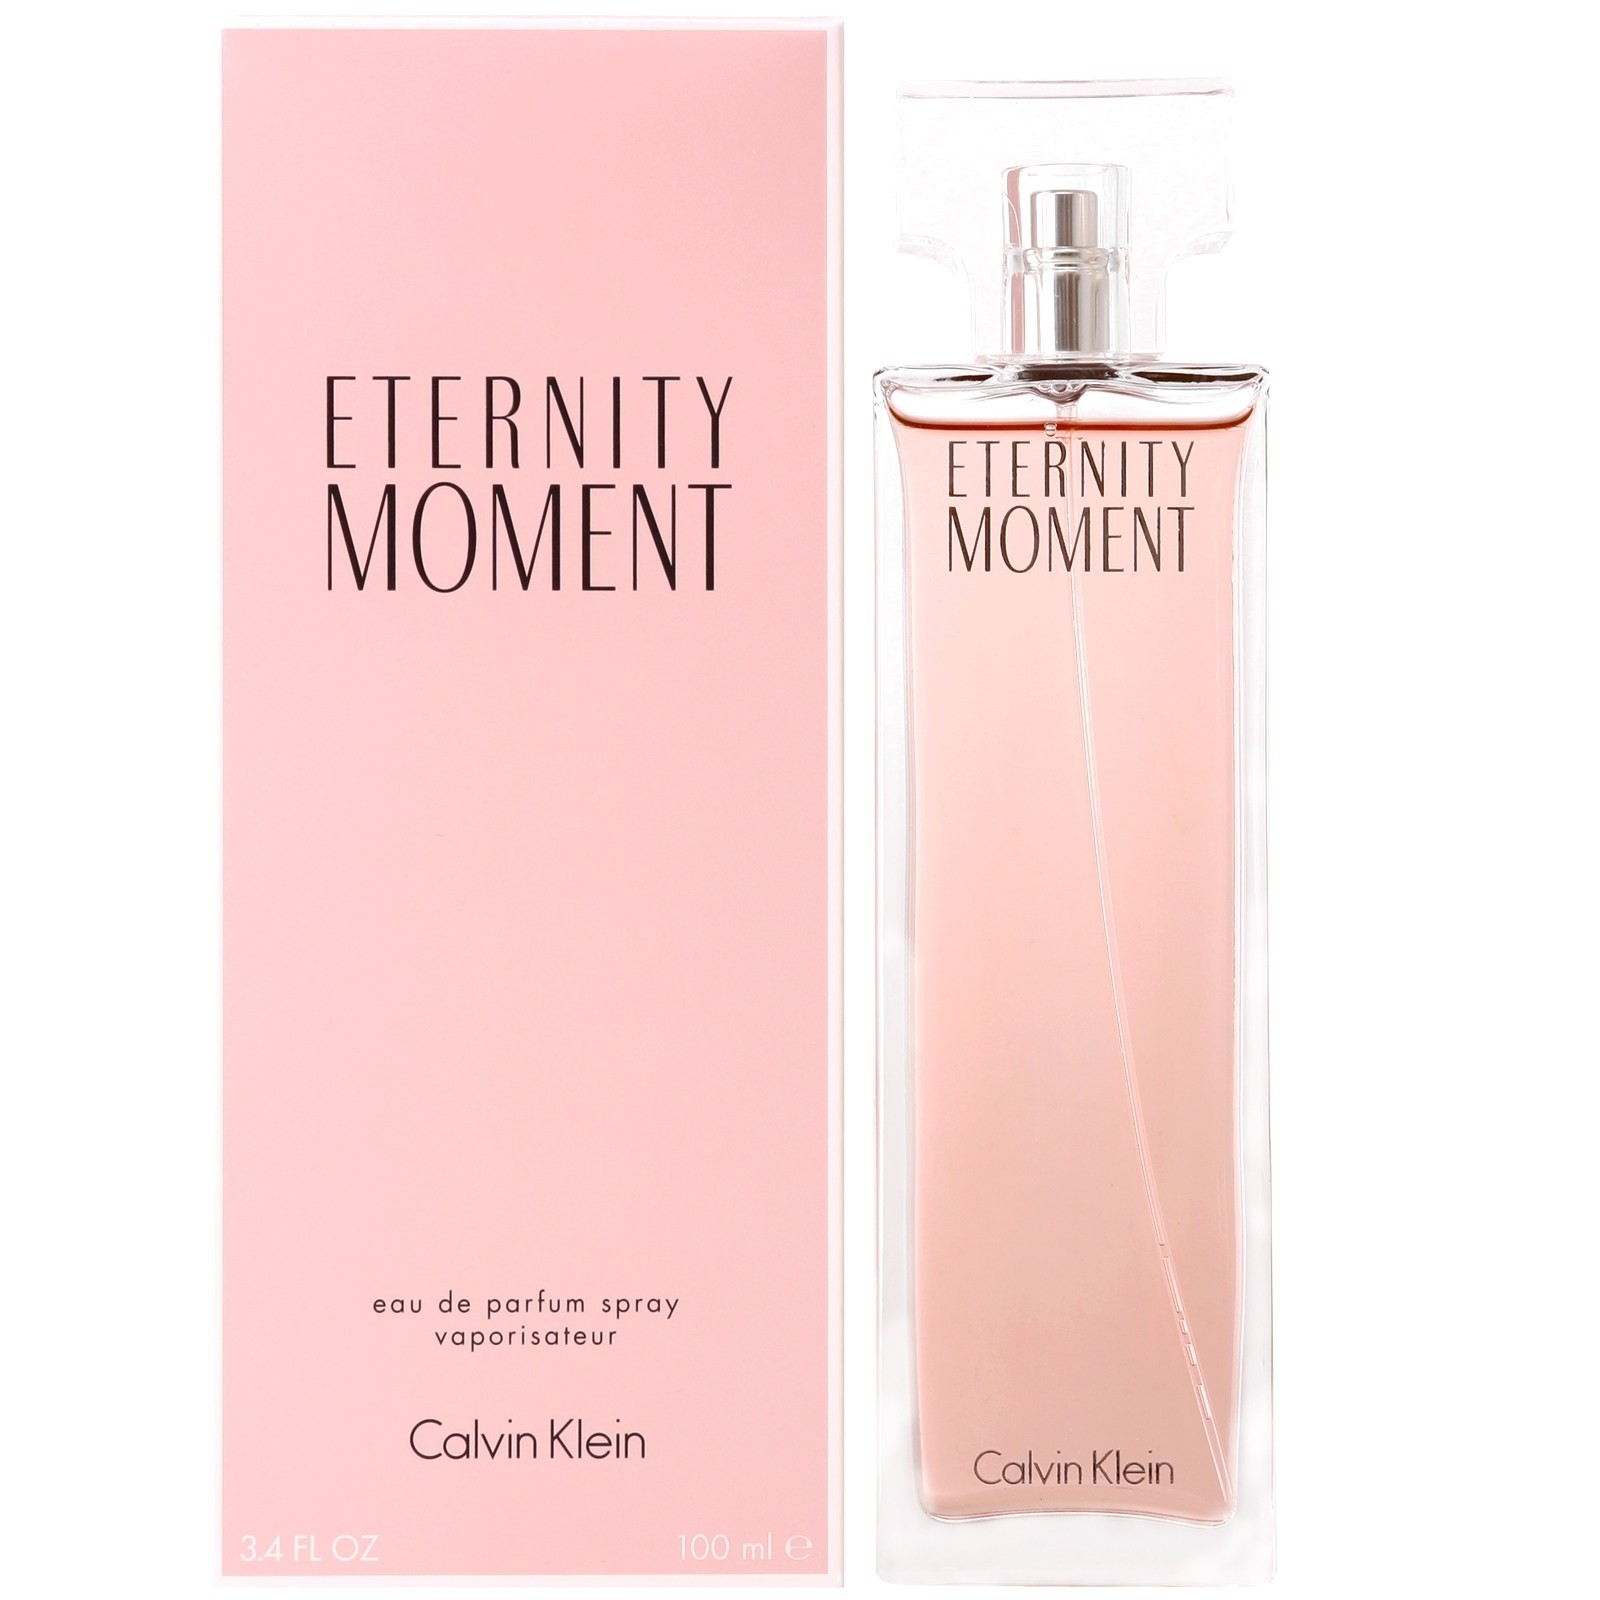 Calvin Klein Eternity Moment eau de parfum 100ml